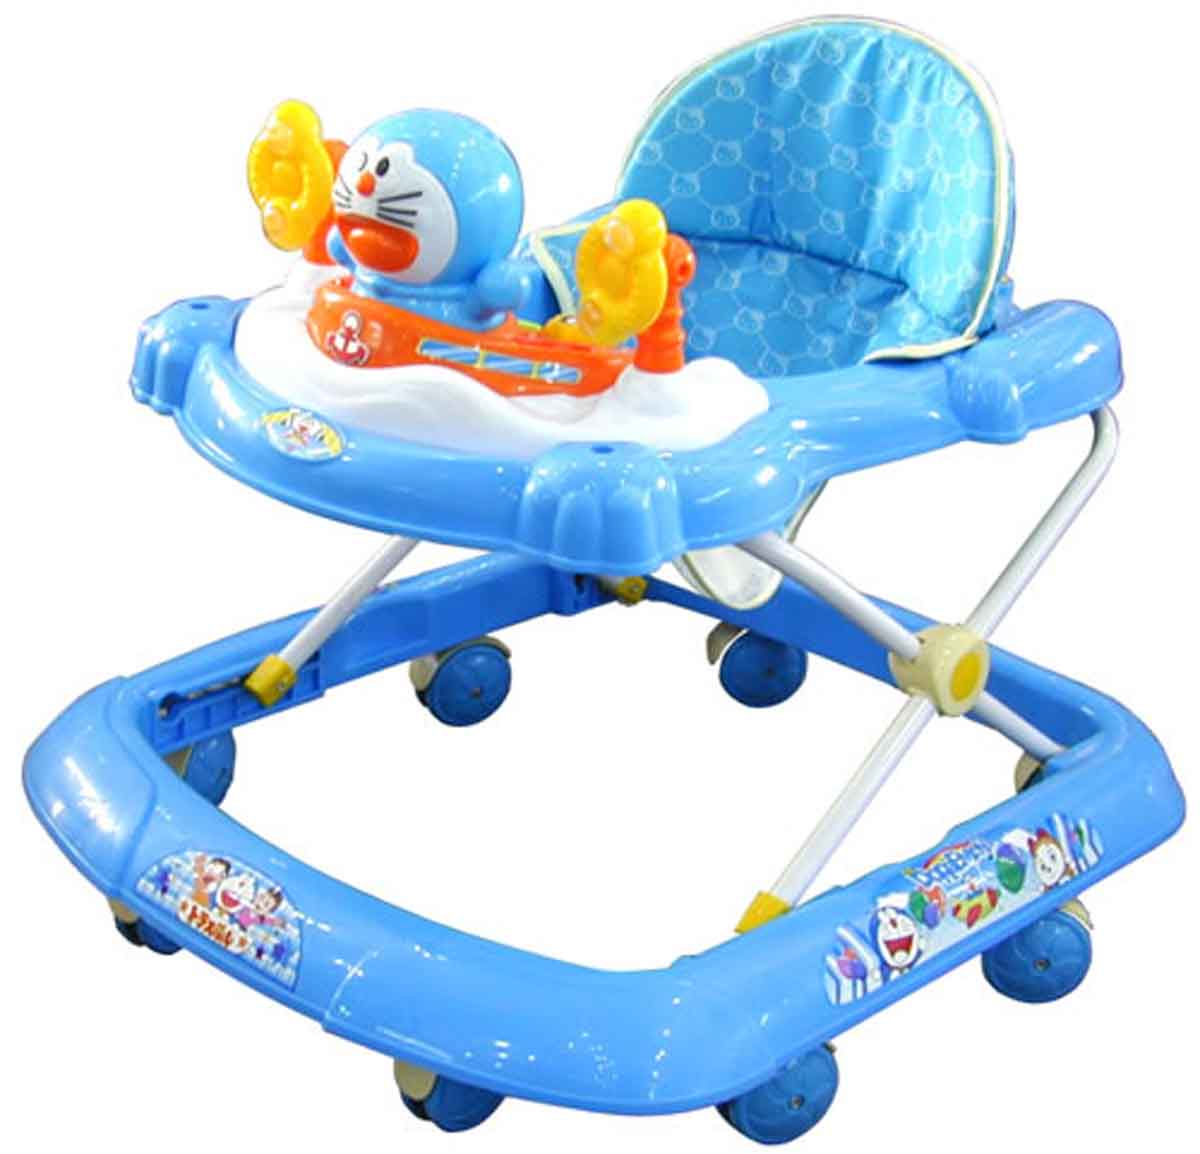 Toy, Selecting a Baby Walker for Your Child